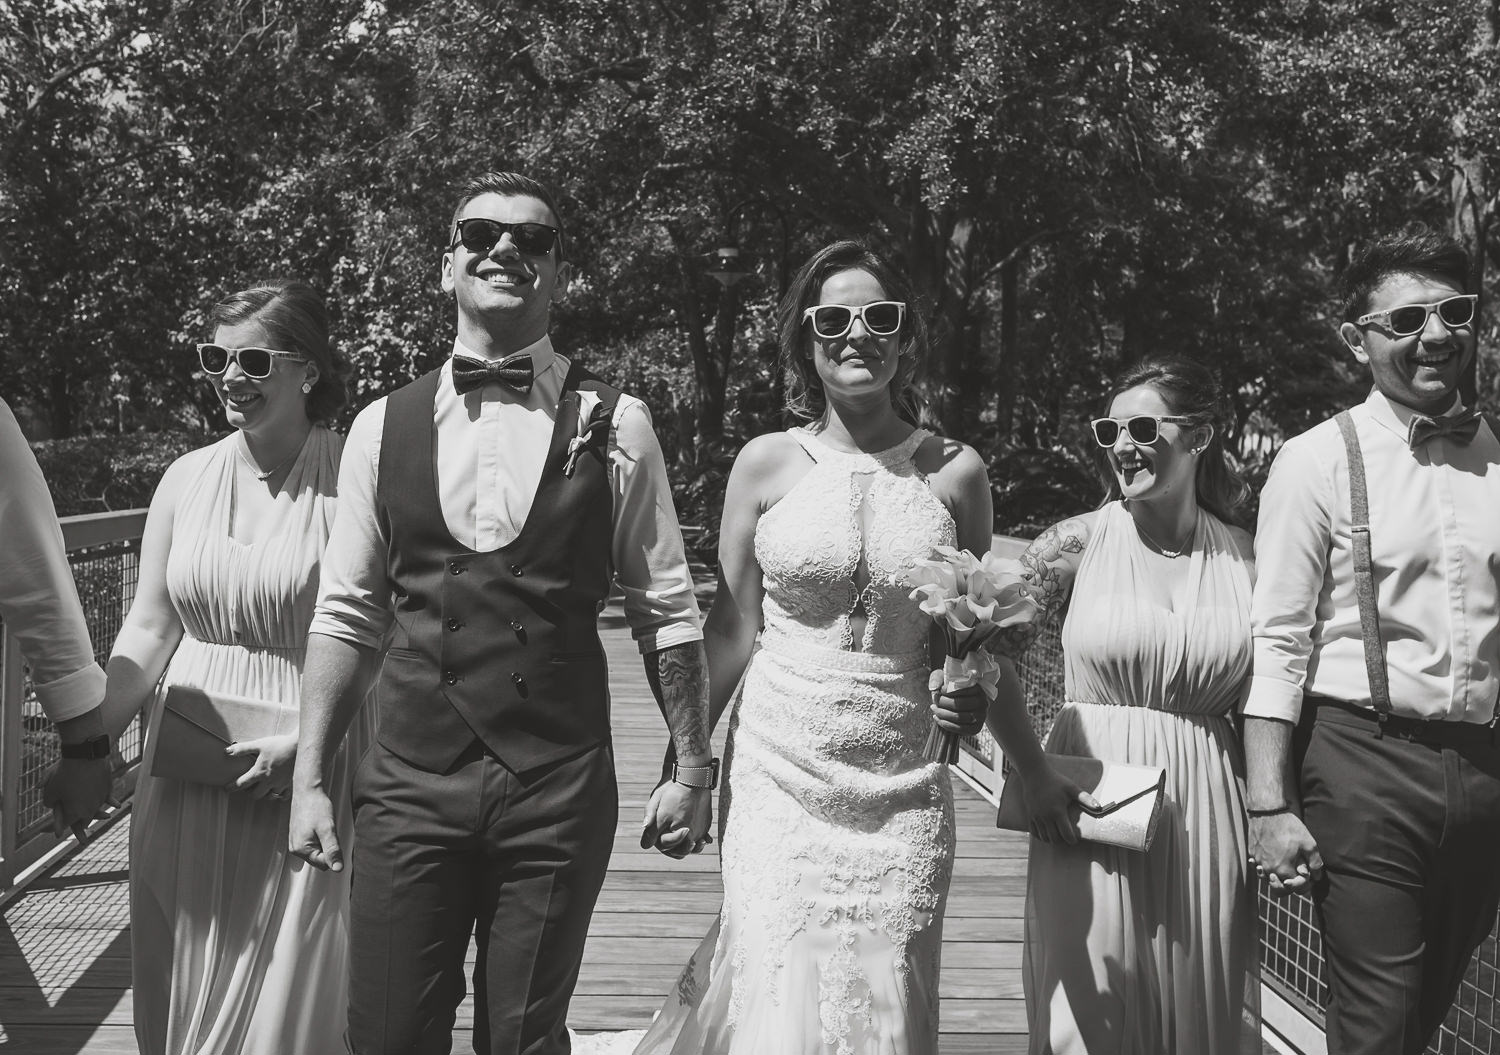 black and white close up of bridal party walking on bridge all wearing sunglasses and laughing